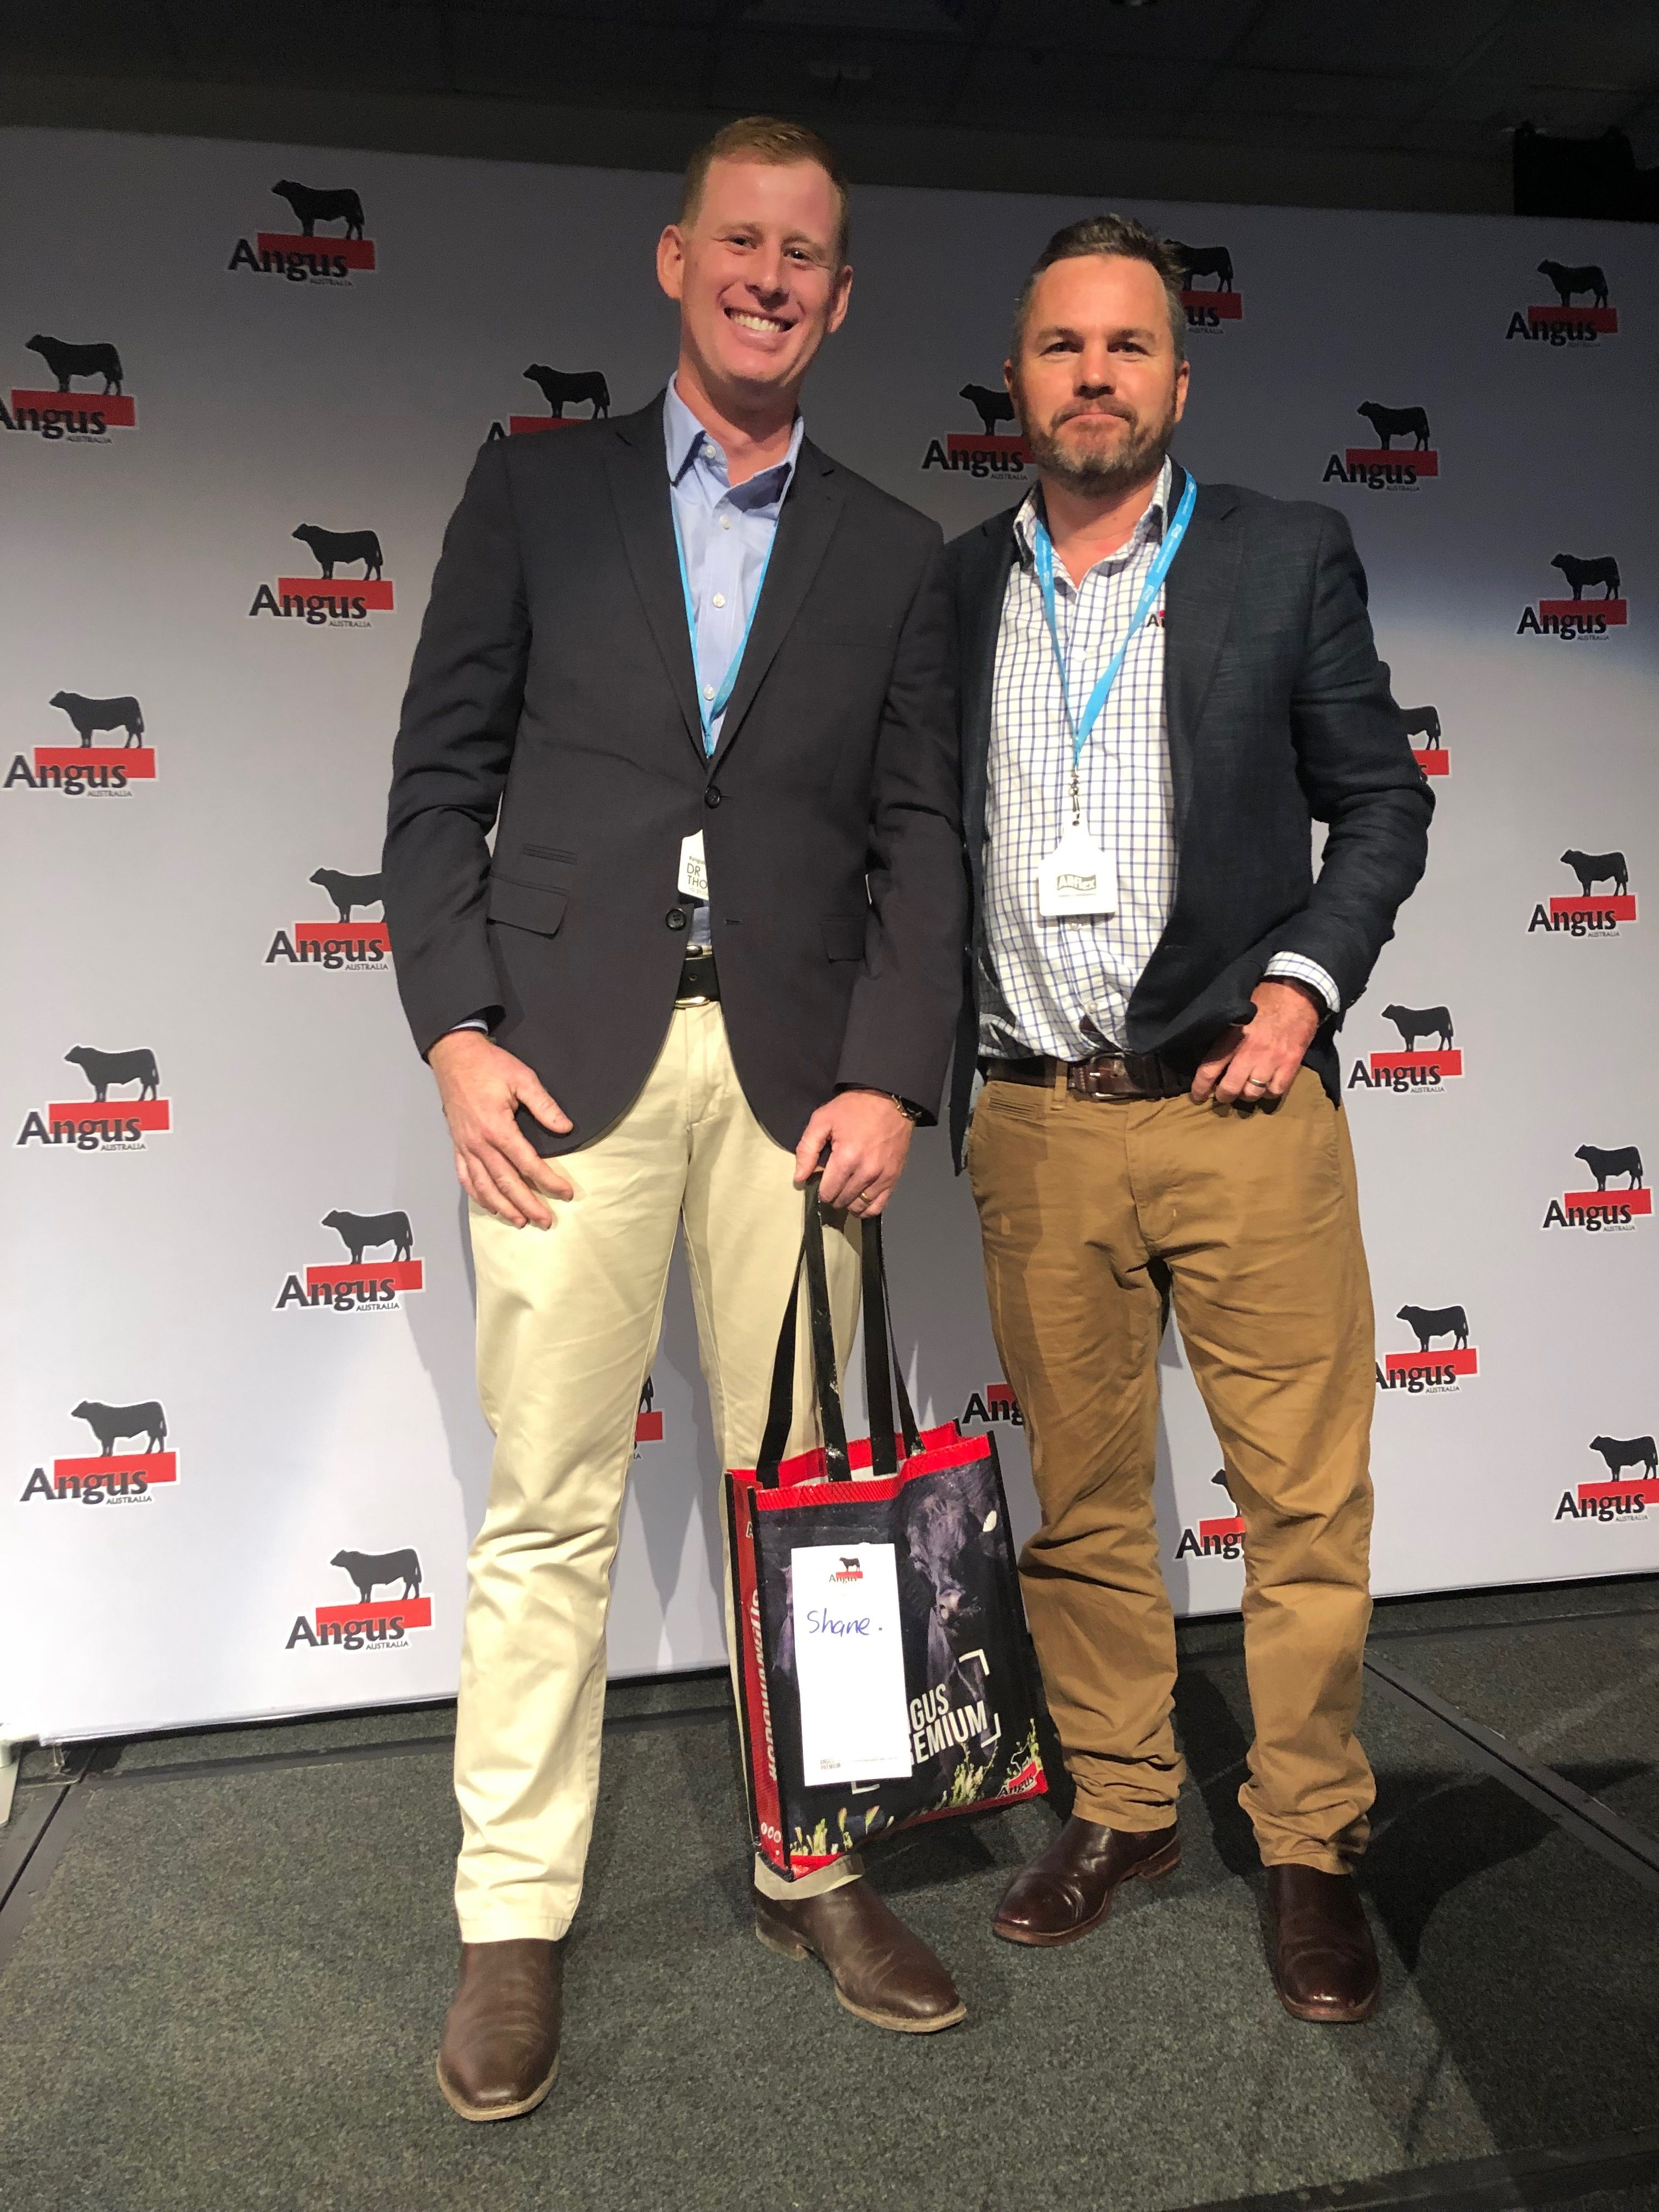 Christian Duff, Angus Australia with Shane Thomson, Holbrook Vet Centre